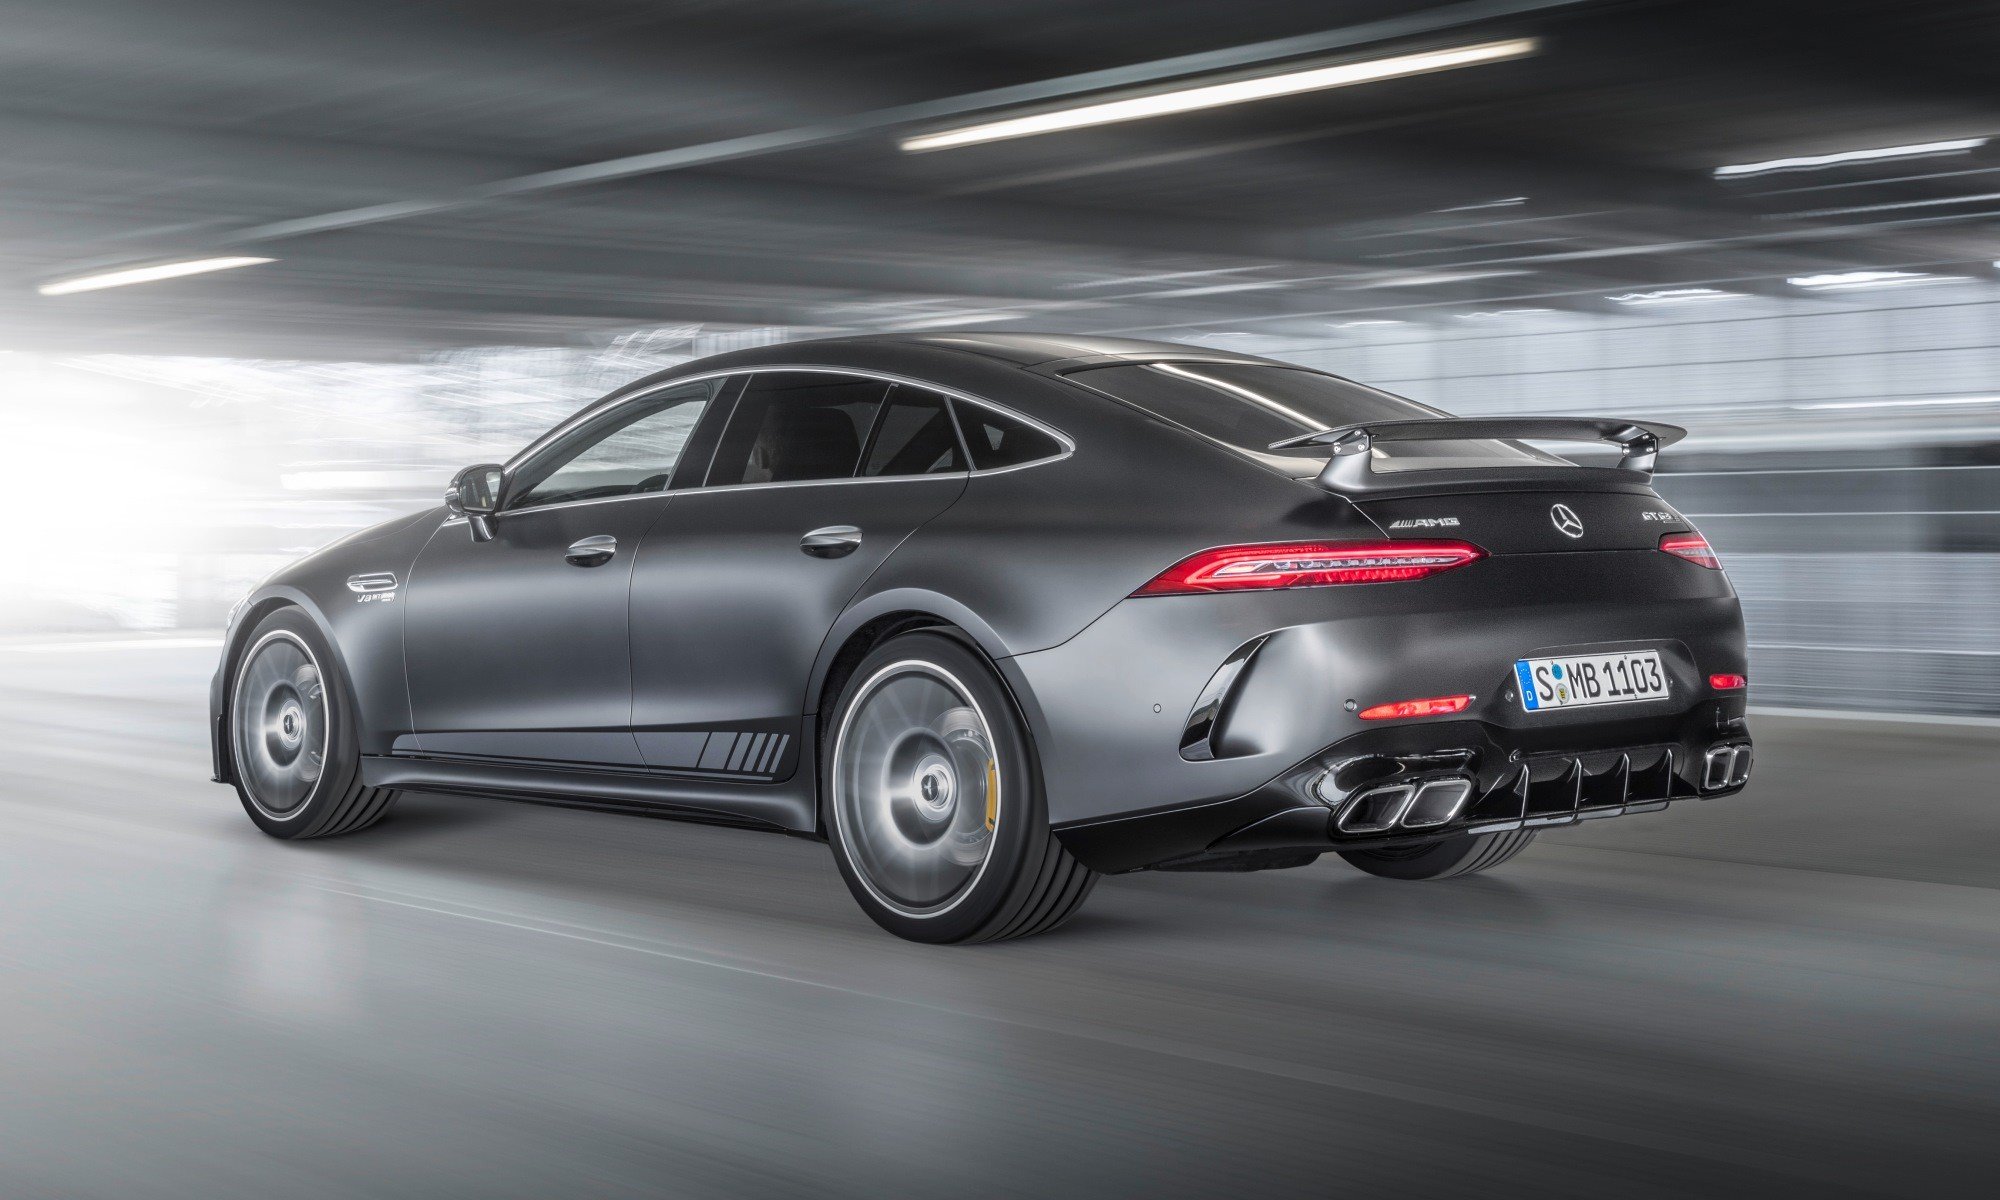 Mercedes-AMG GT63 S